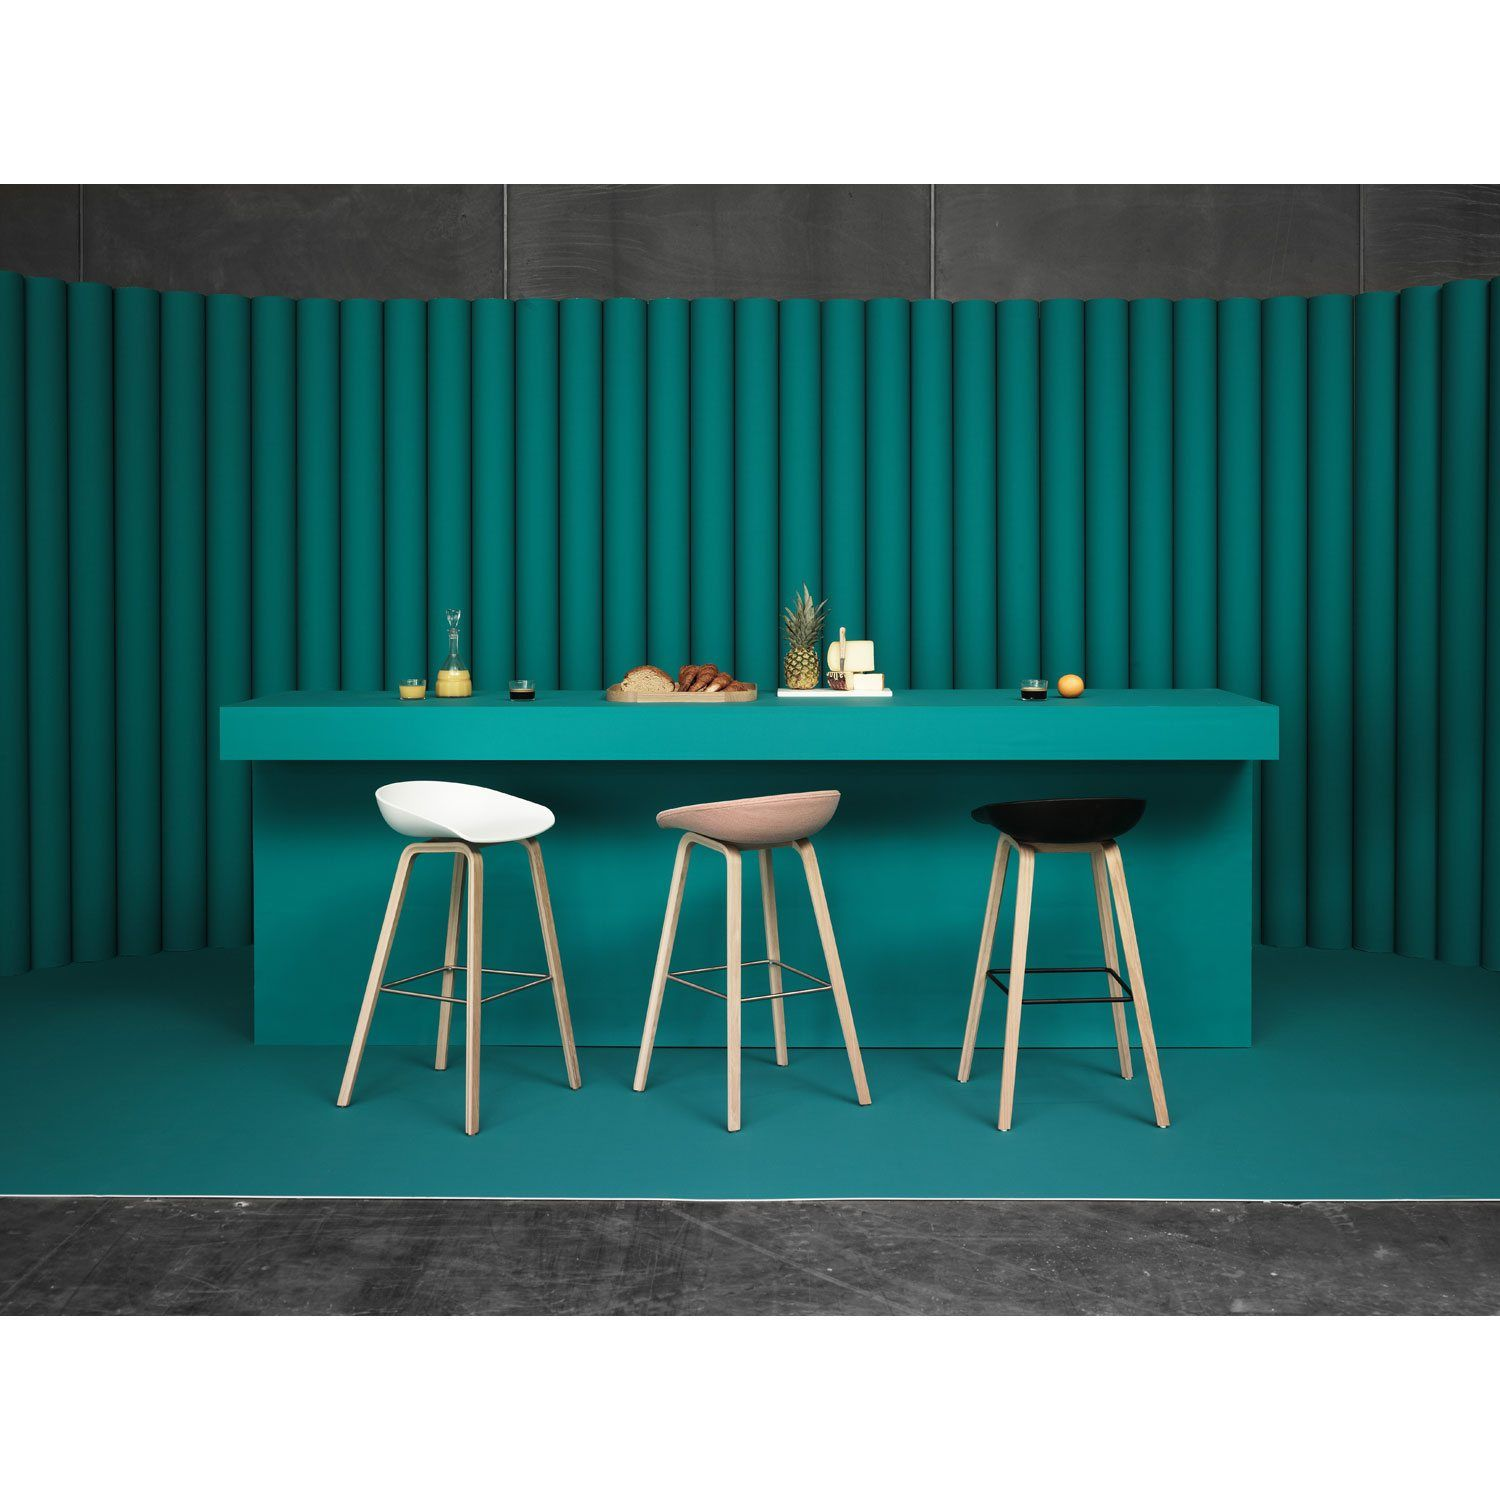 About a Stool h75 barstol, vit/ekben | Stools, Inredning and Room